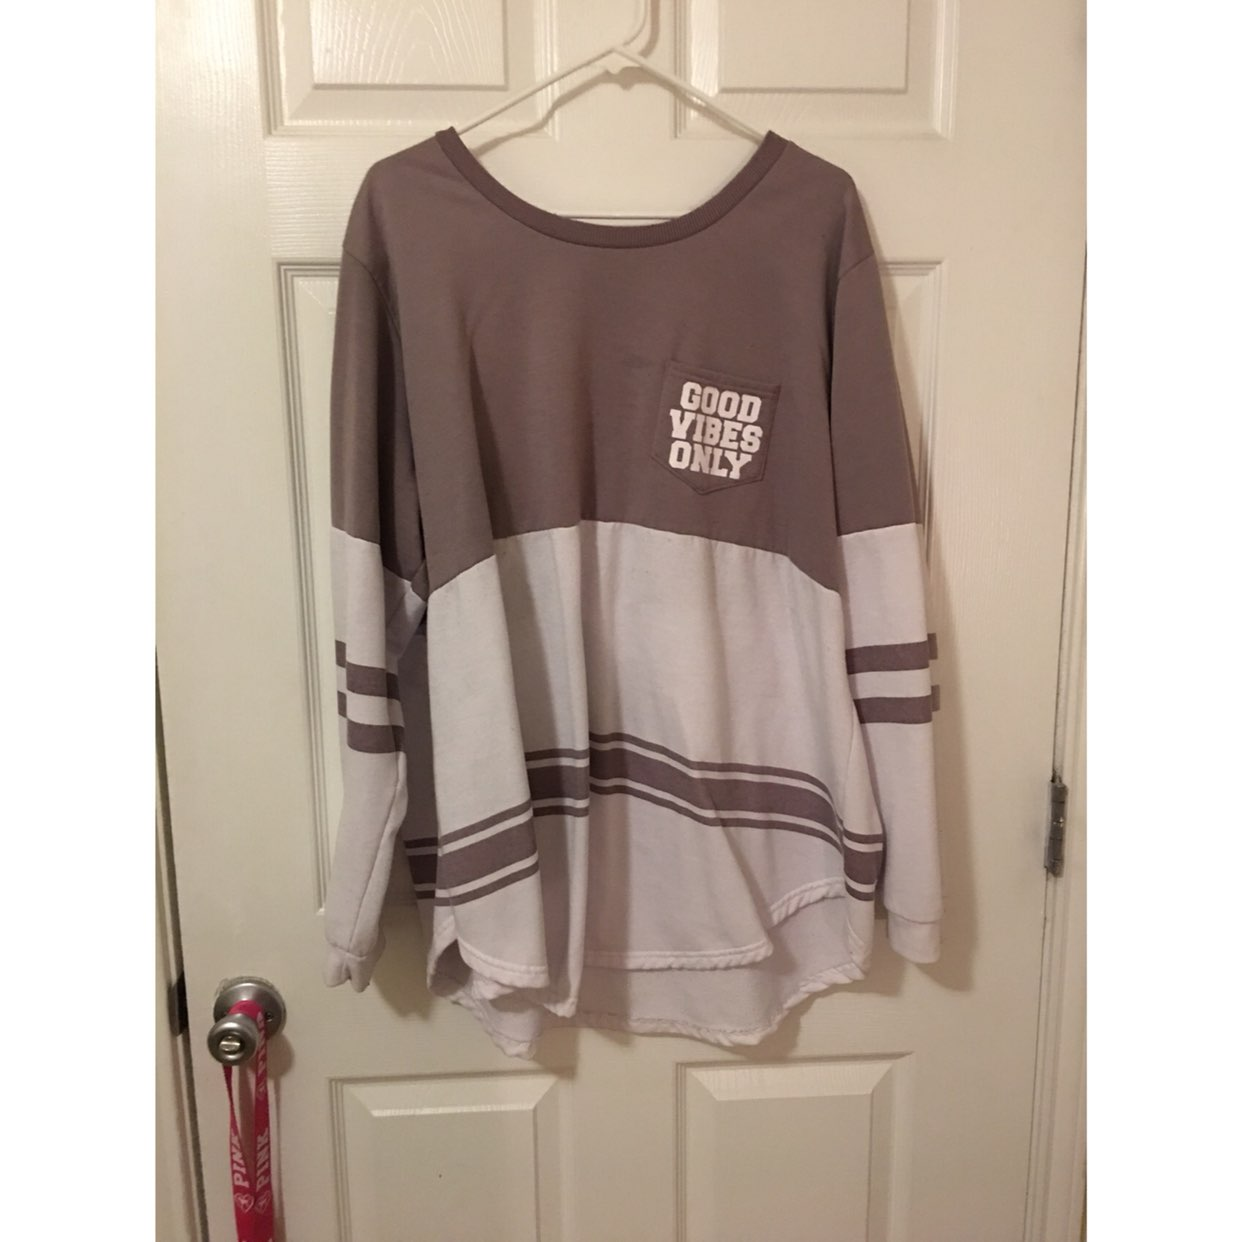 rue 21 plus size sweater - mercari: buy & sell things you love